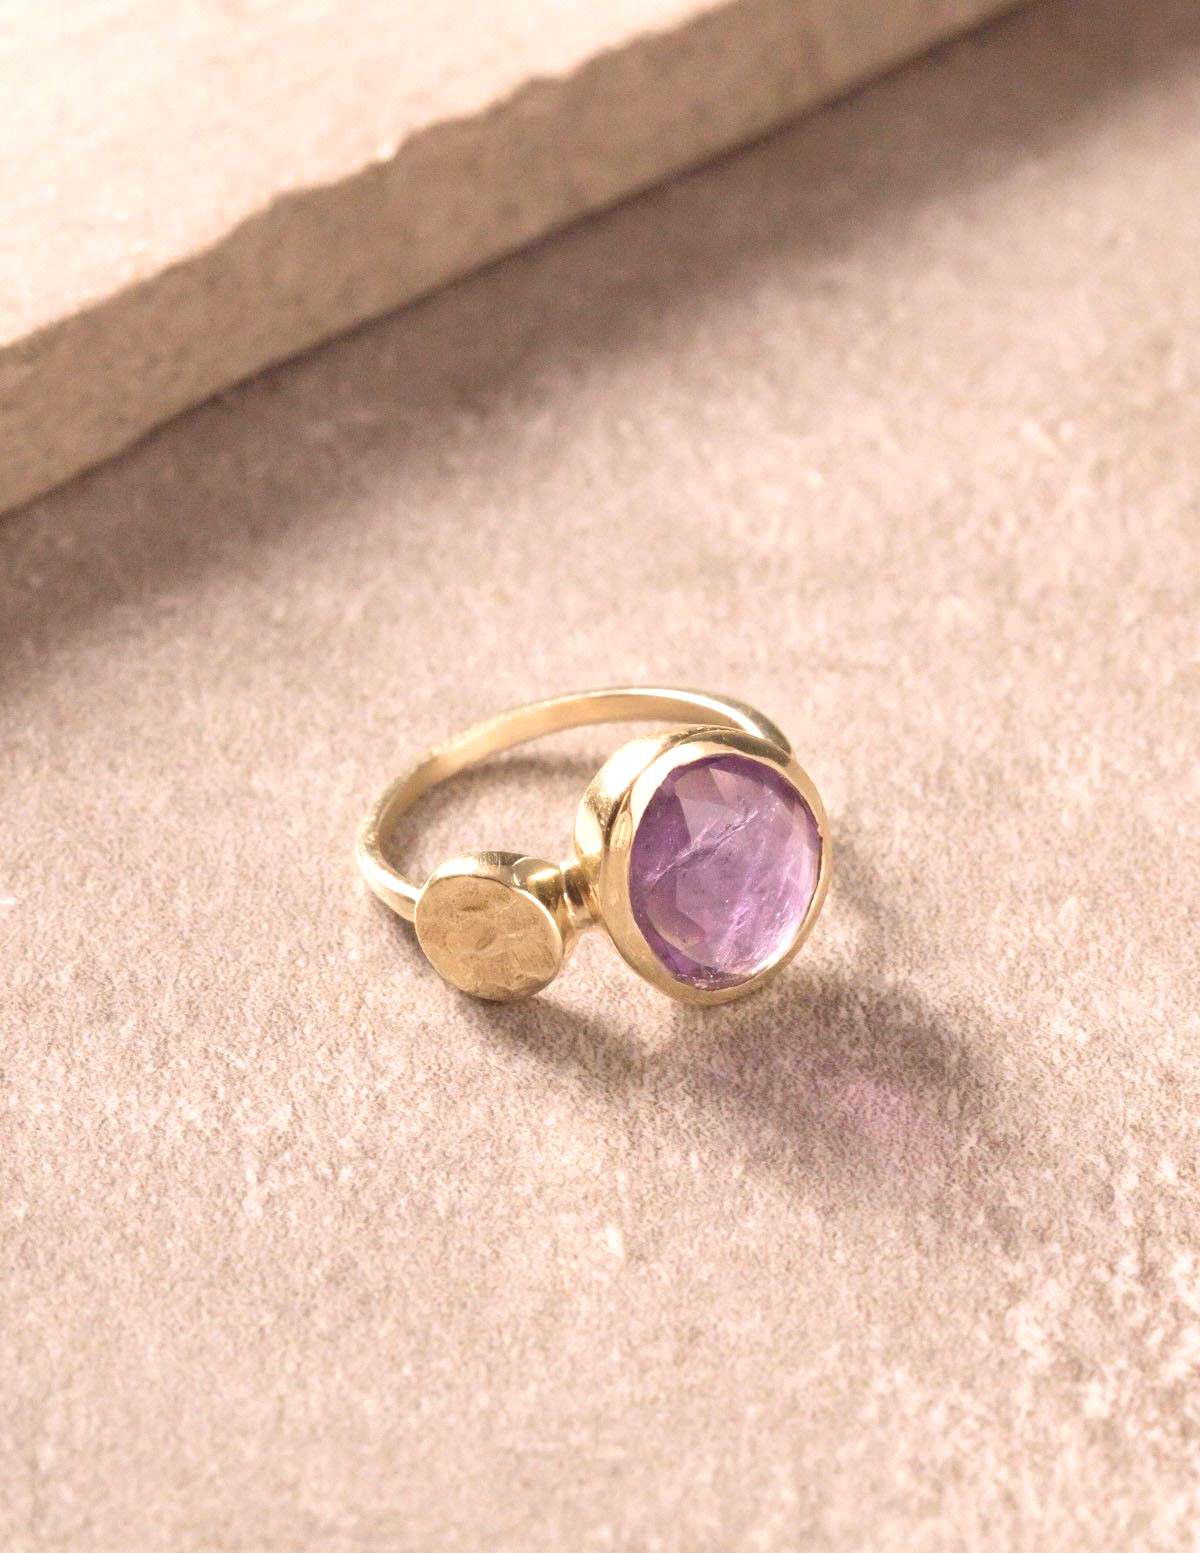 7 Stunning Pieces Of Healing Amethyst Jewelry For $50 Or Under